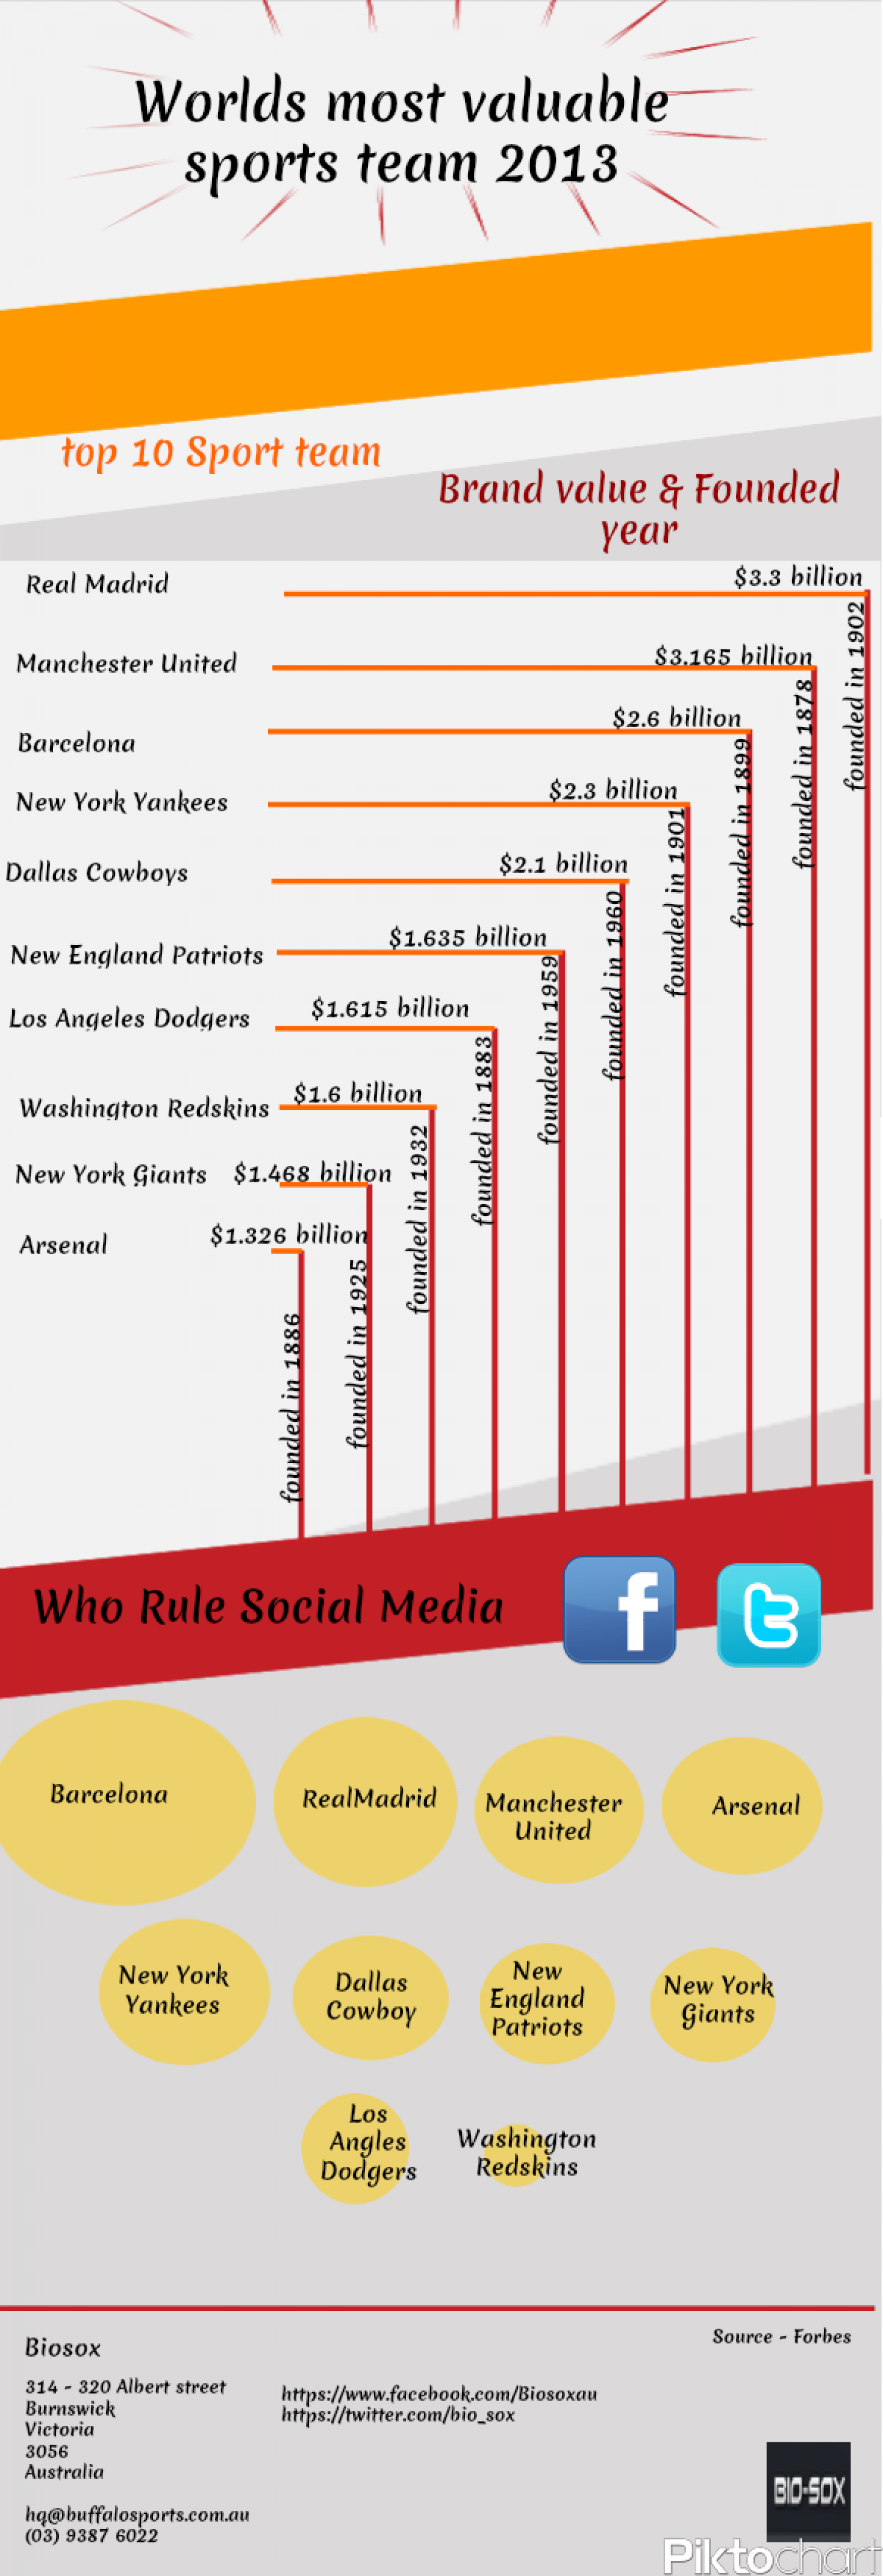 Worlds Most Valuable Sports Team 2013 Infographic